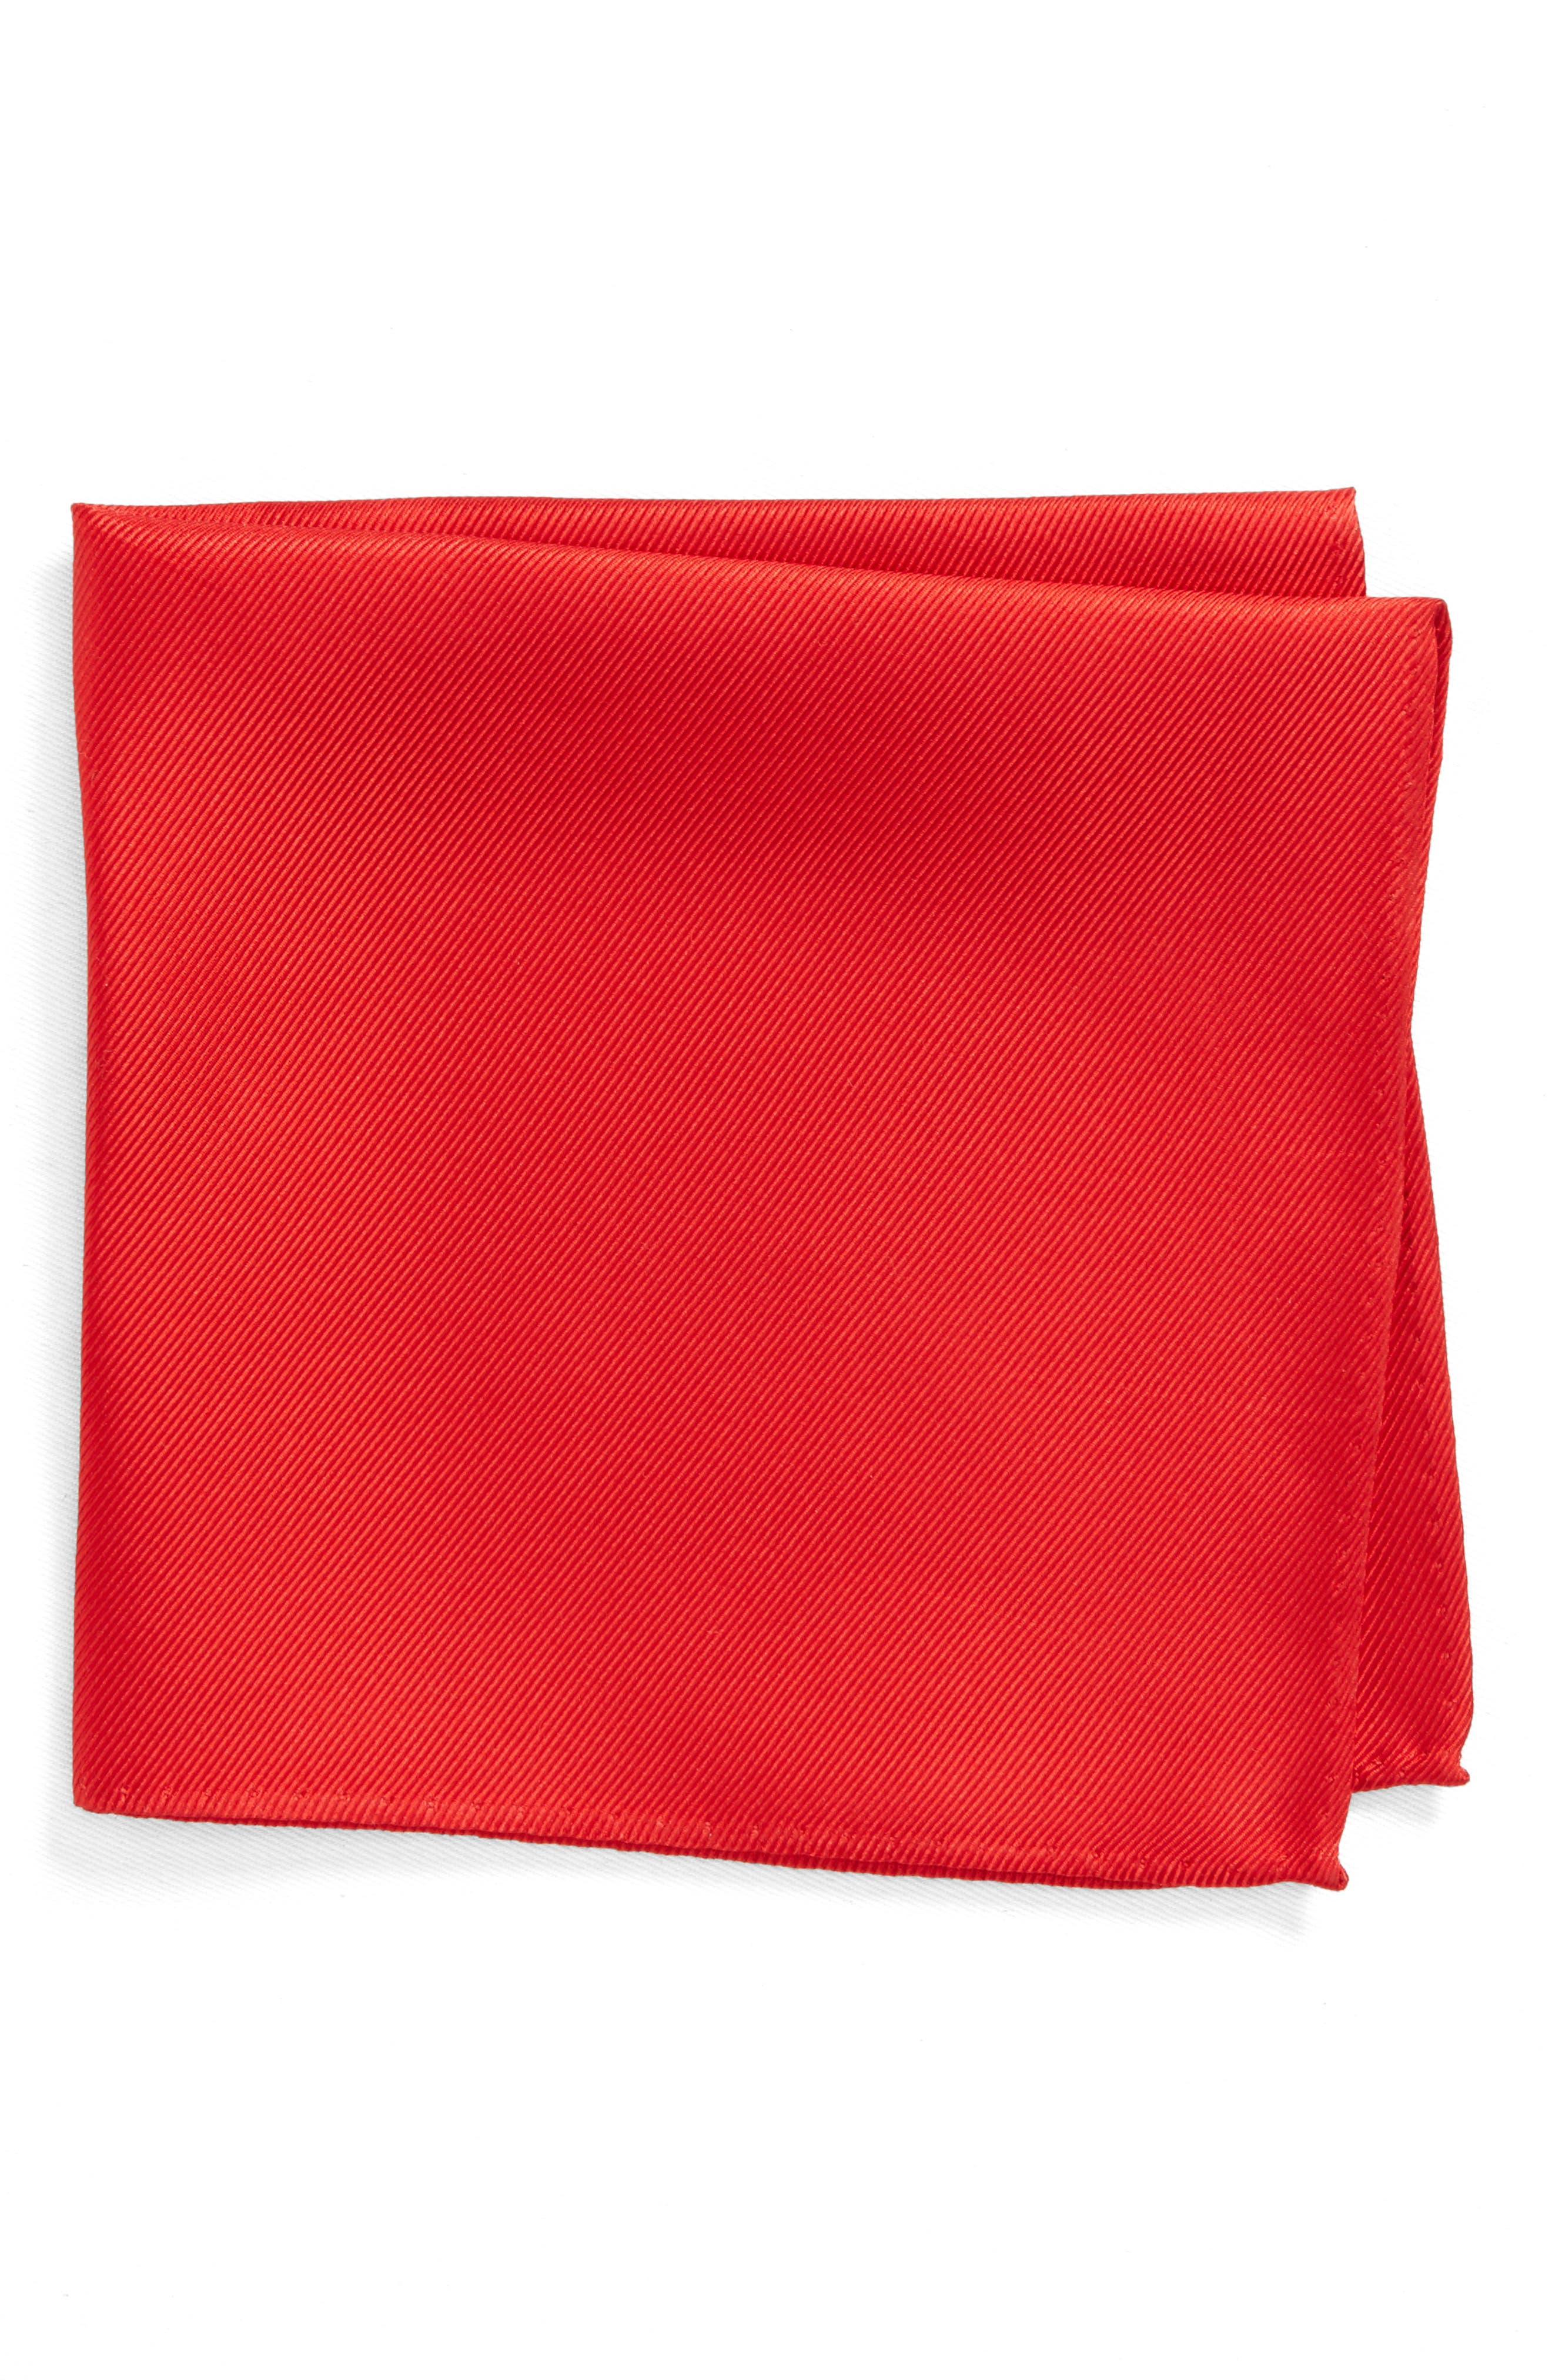 King Twill Silk Pocket Square,                         Main,                         color, Red